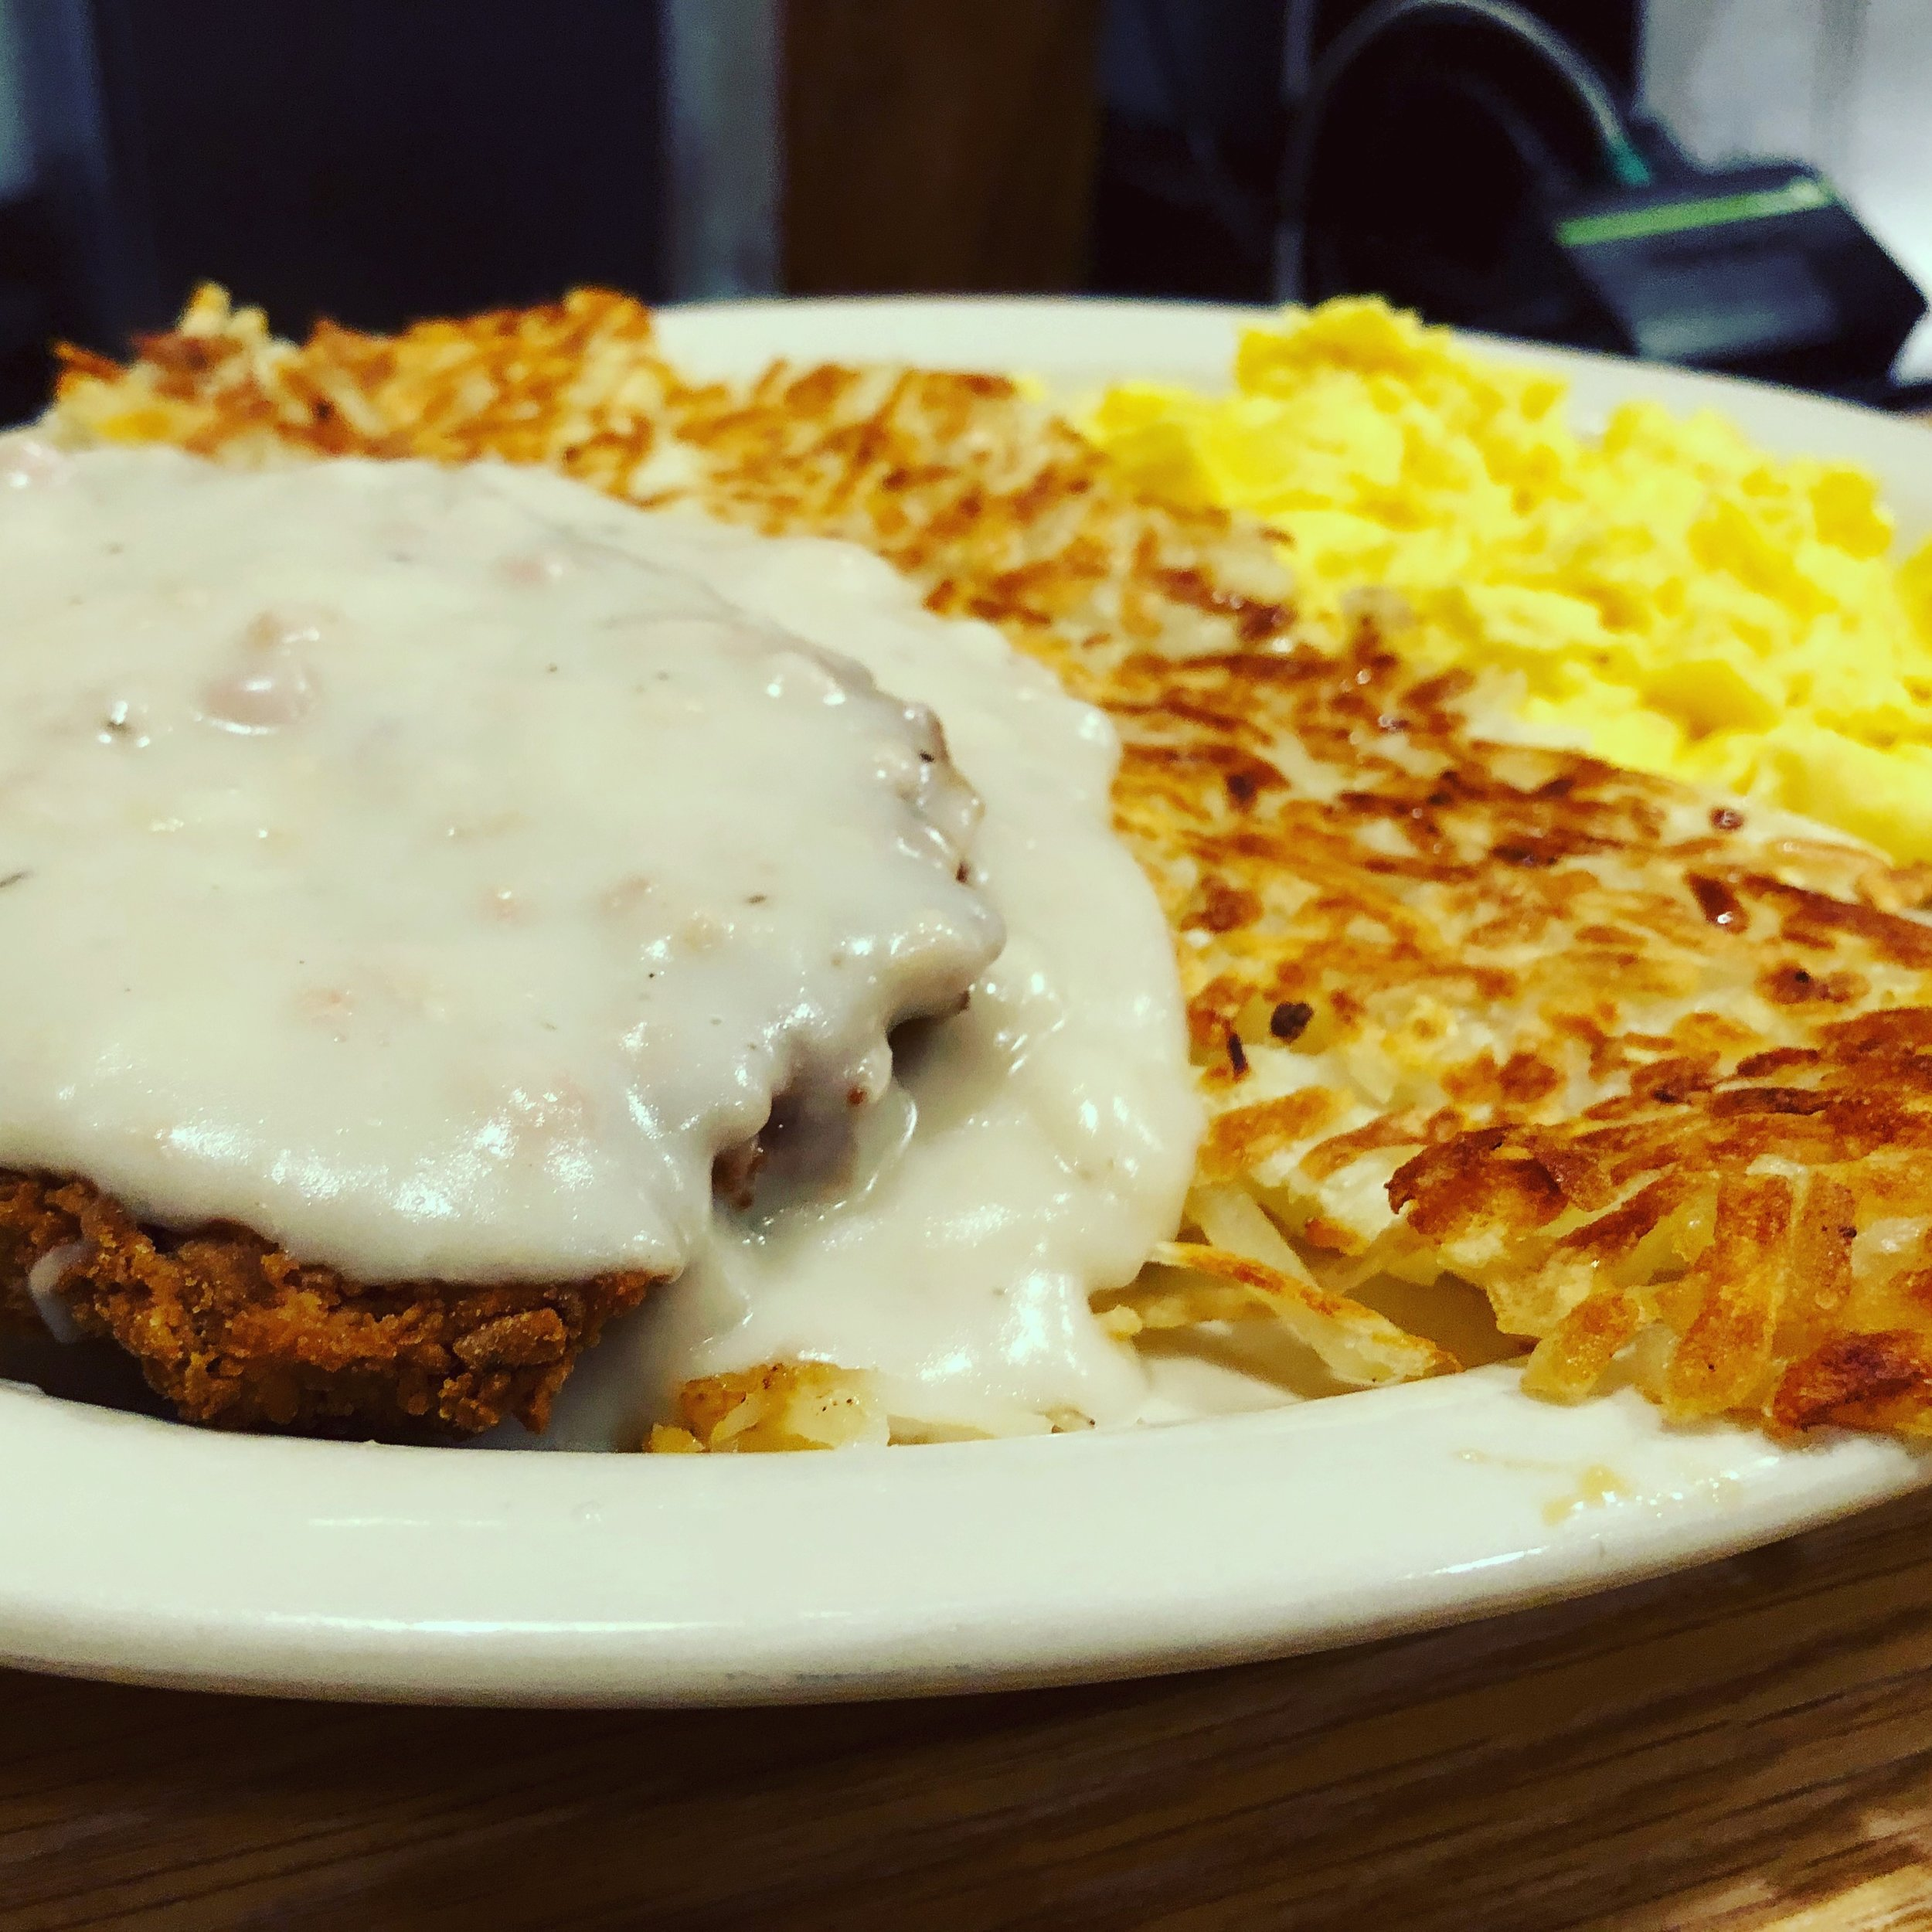 Chicken fried steak, hashbrowns, scrambled eggs